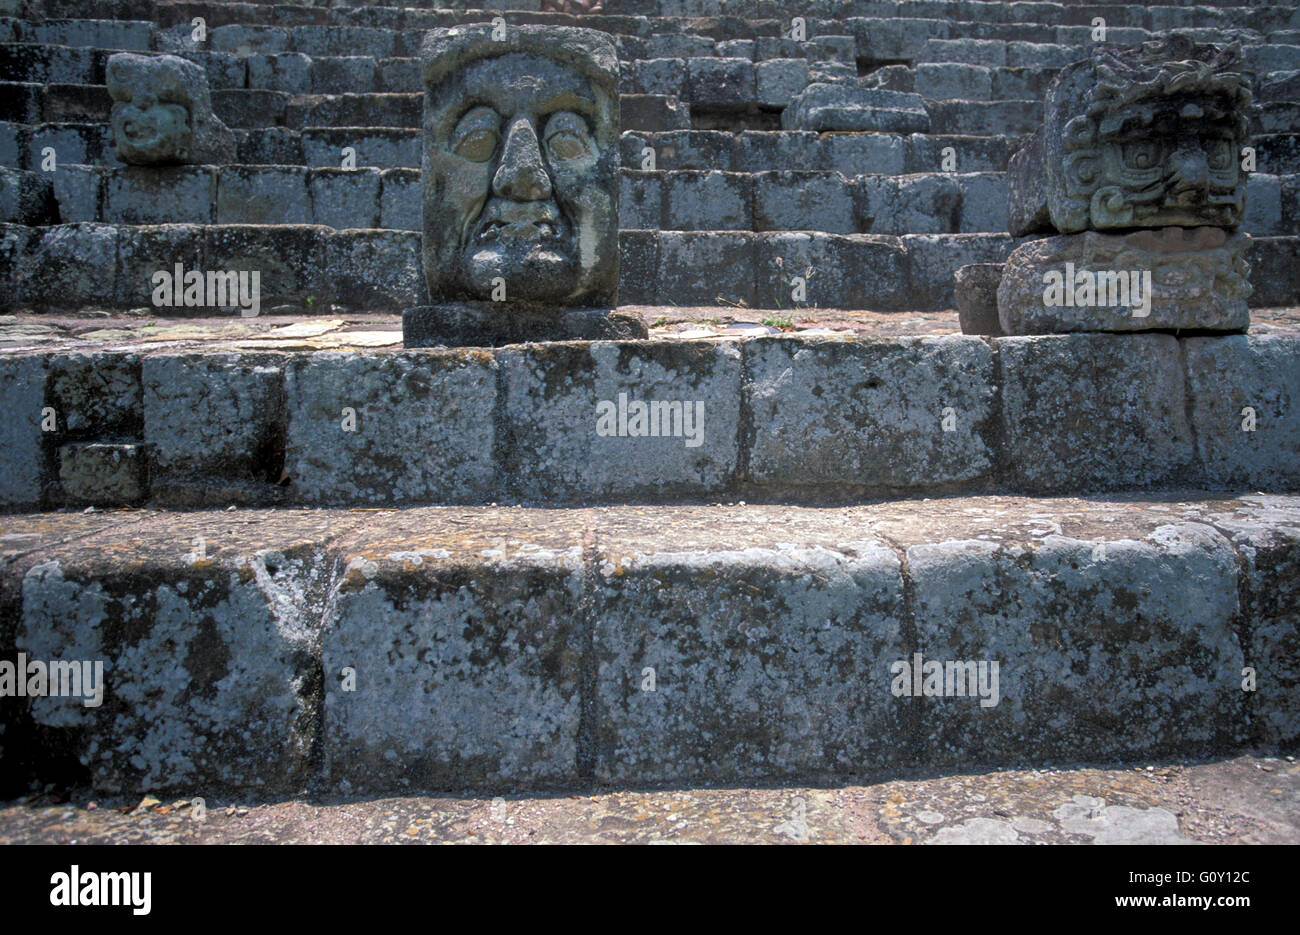 Grotesque sculptures face in Copan Ruins, an archaeological site of the Maya civilization in Copan Department, Honduras - Stock Image